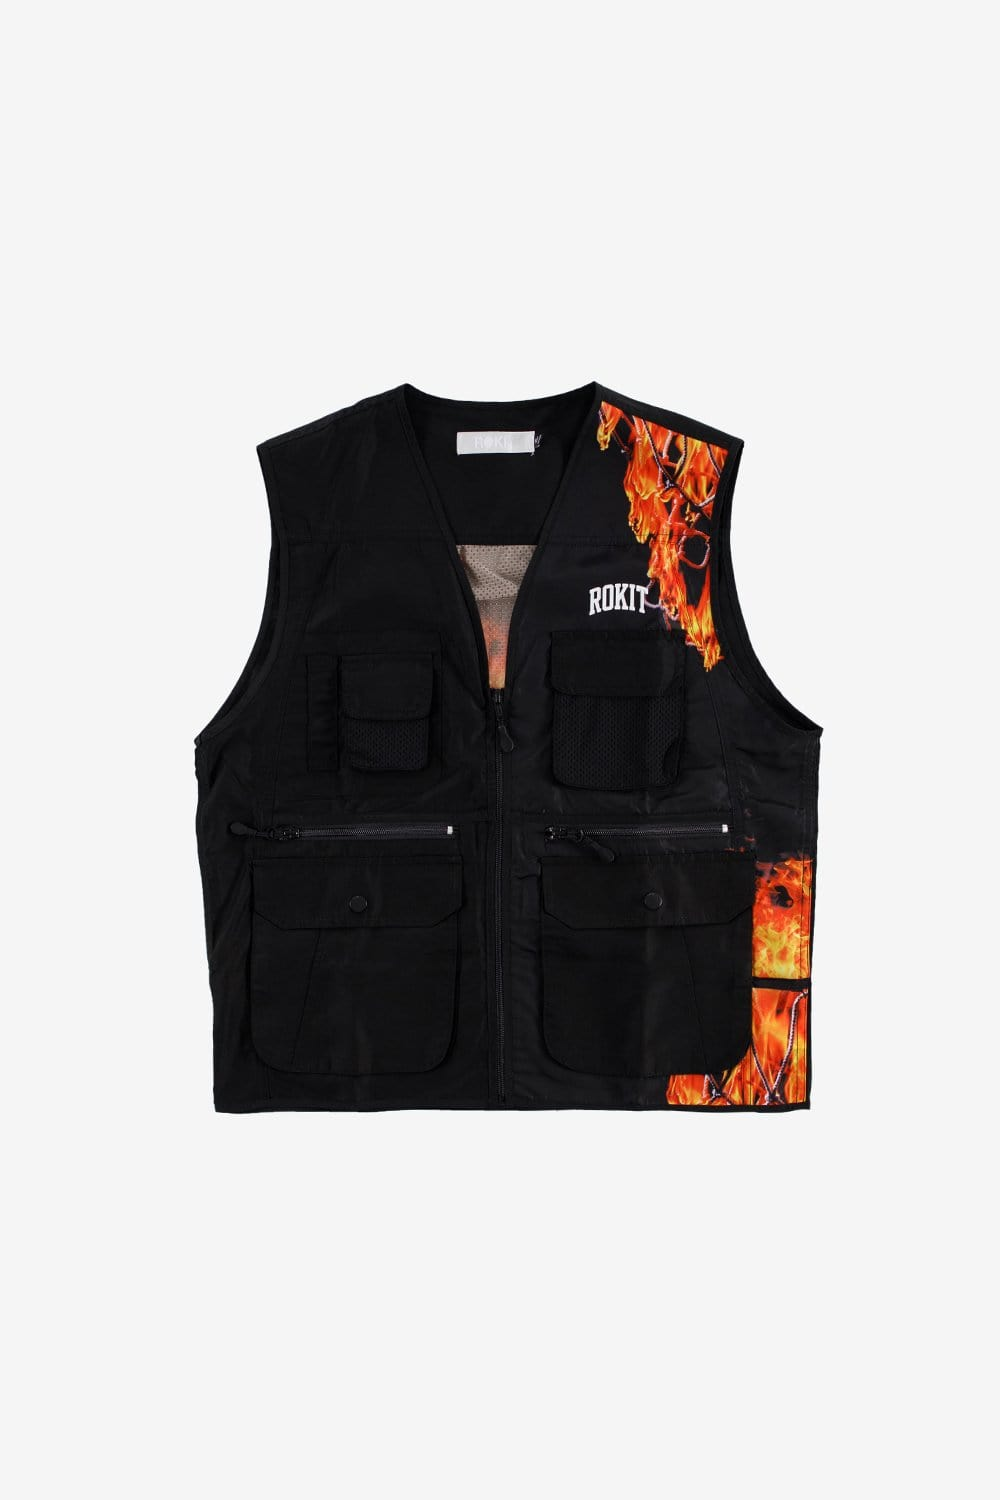 Rokit Apparel Sublime Utility Vest